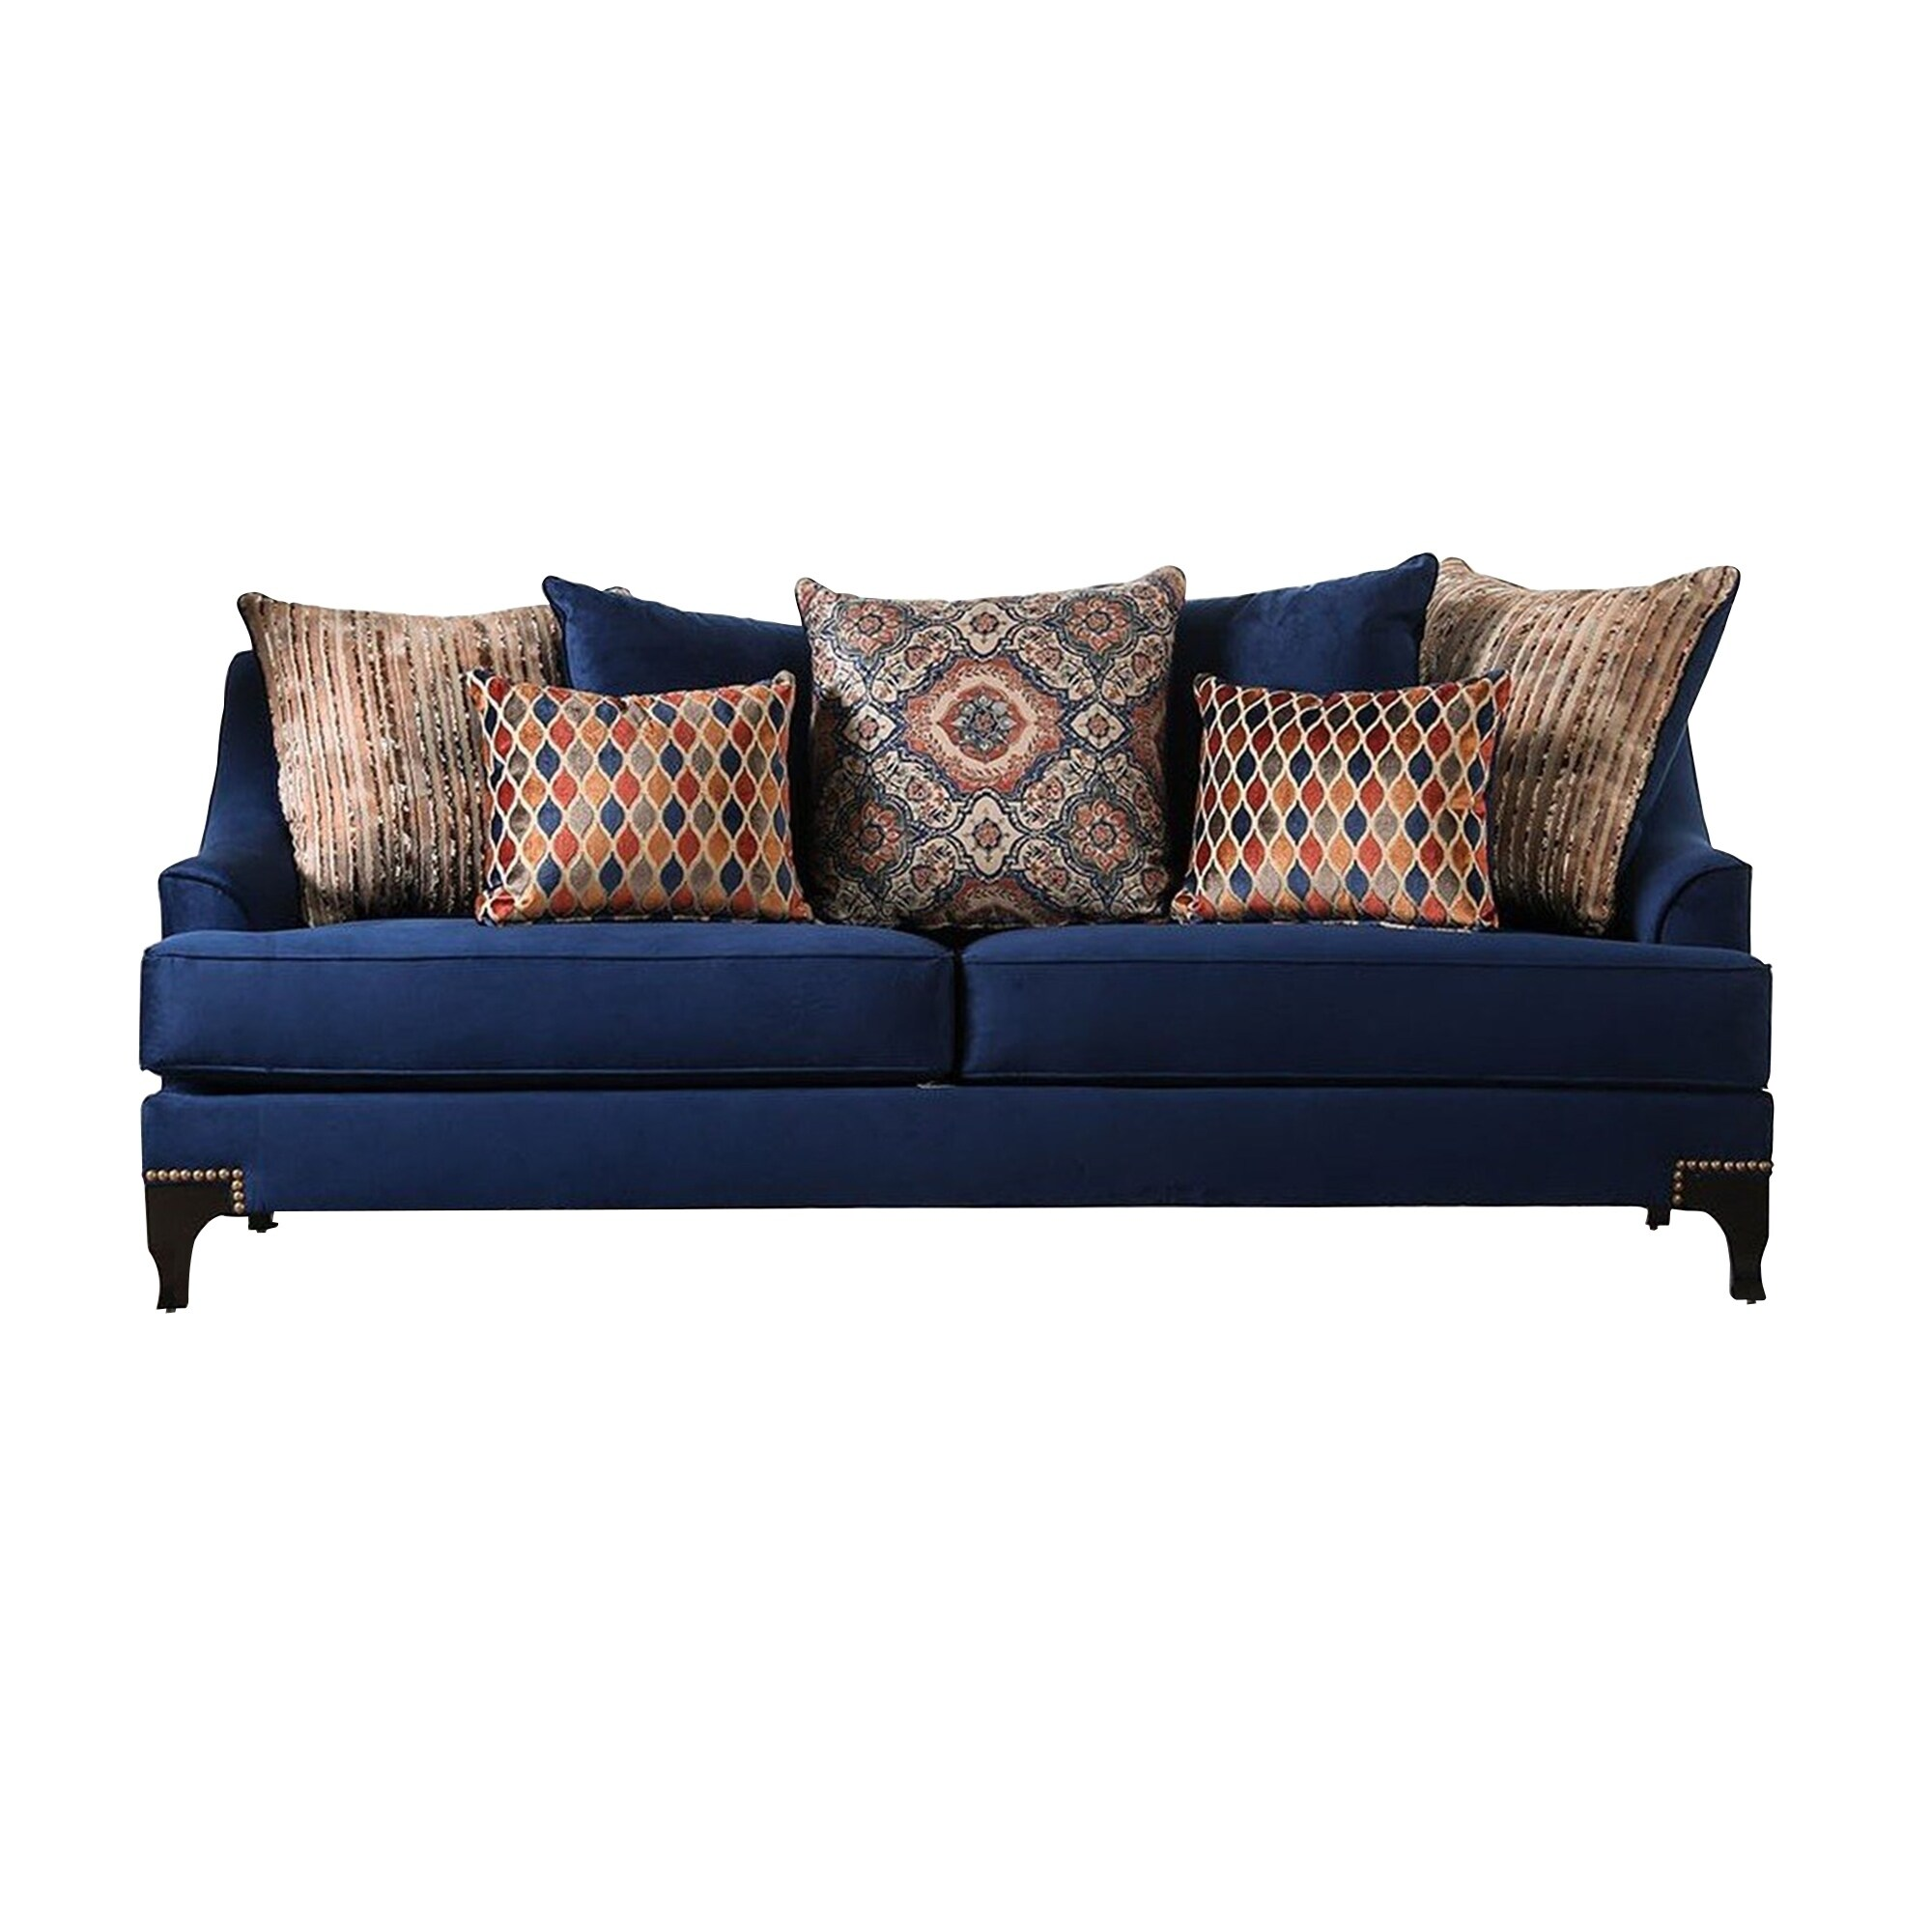 Image of: Shop Black Friday Deals On Wood And Chenille Fabric Upholstered Sofa With Throw Pillows Blue On Sale Overstock 30148438